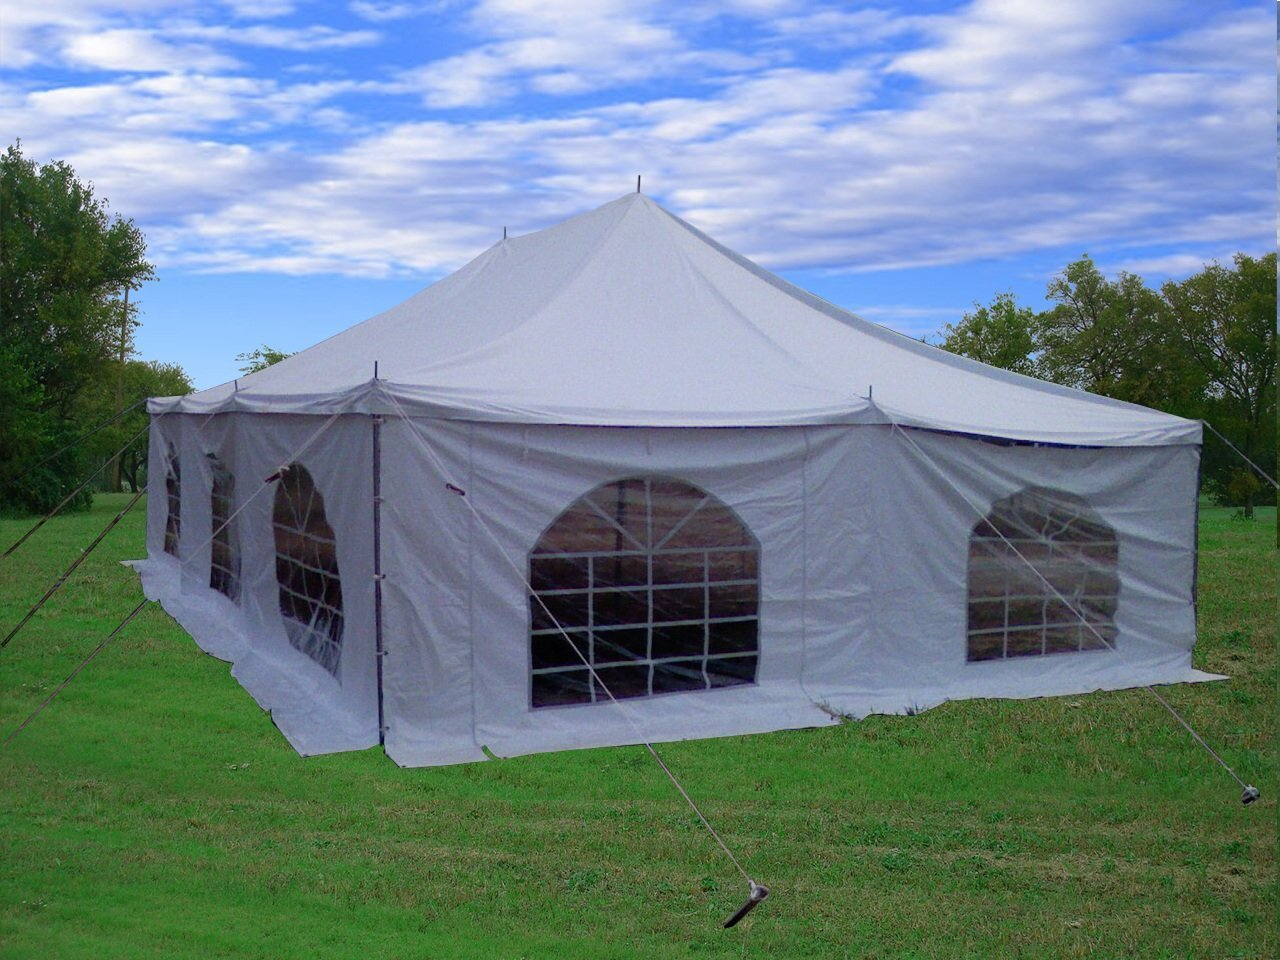 & We Can Raise $599.99 for Marriage Tents!